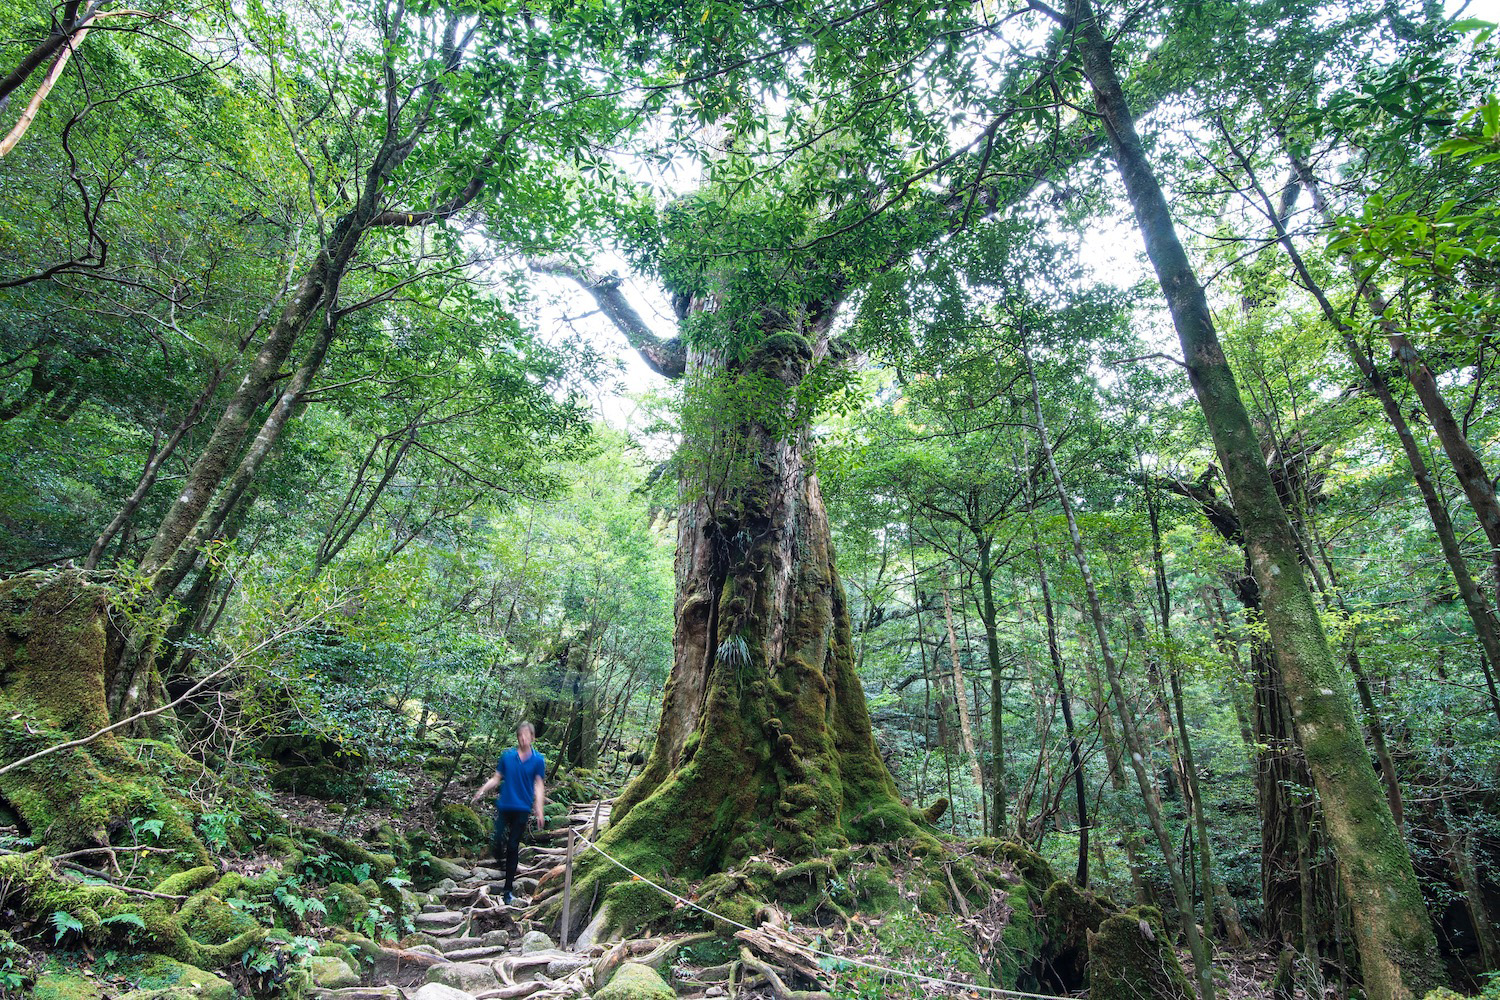 Robert Schrader in Yakushima Island, Japan